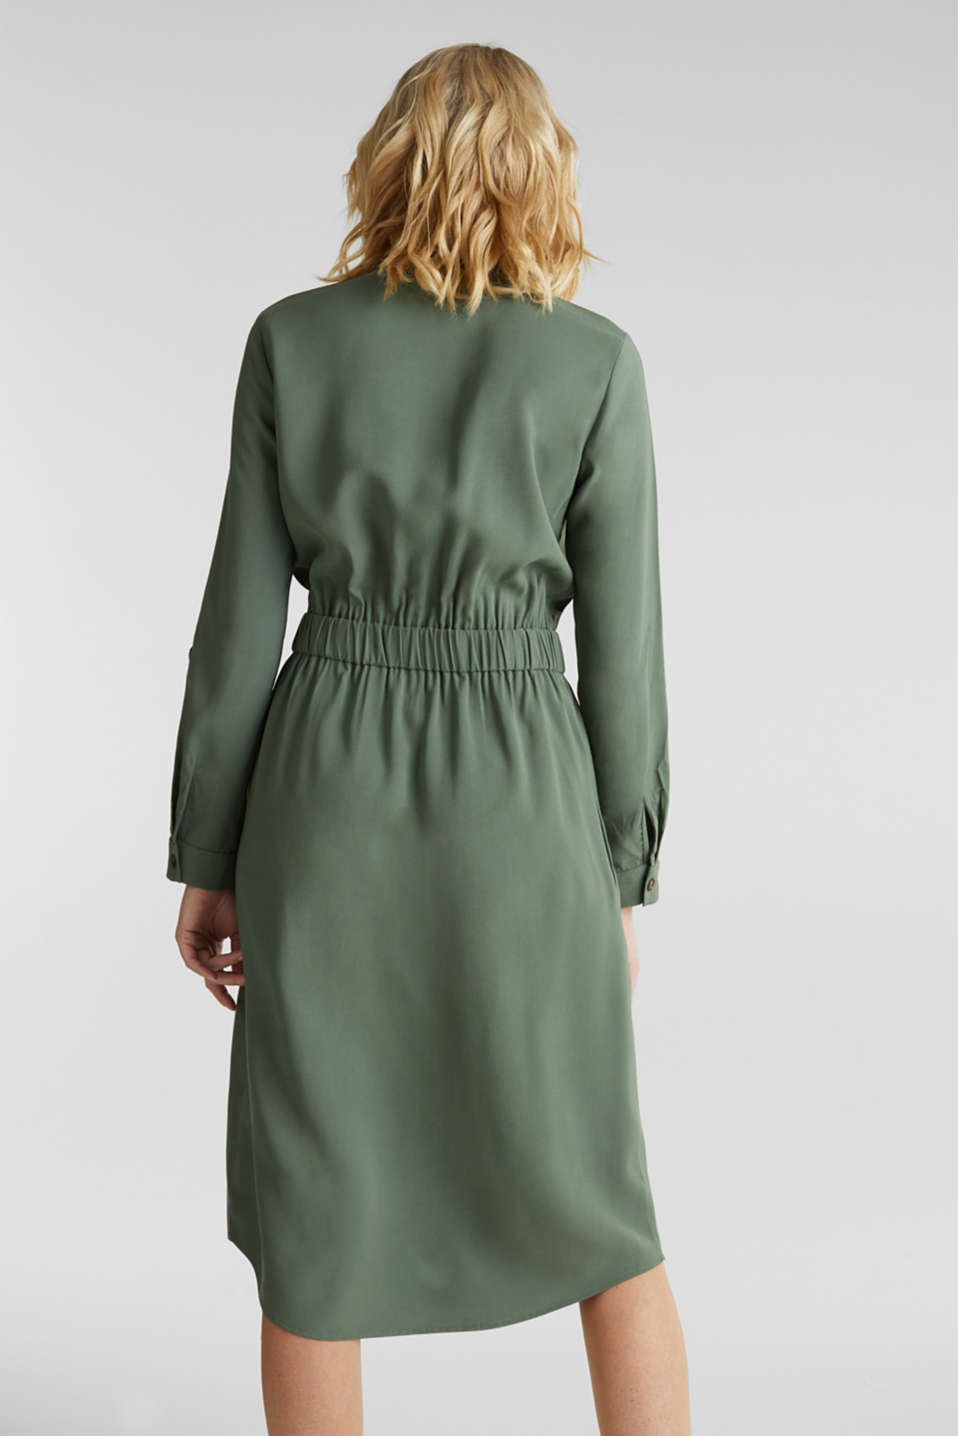 Shirt dress in a utility style, KHAKI GREEN, detail image number 3